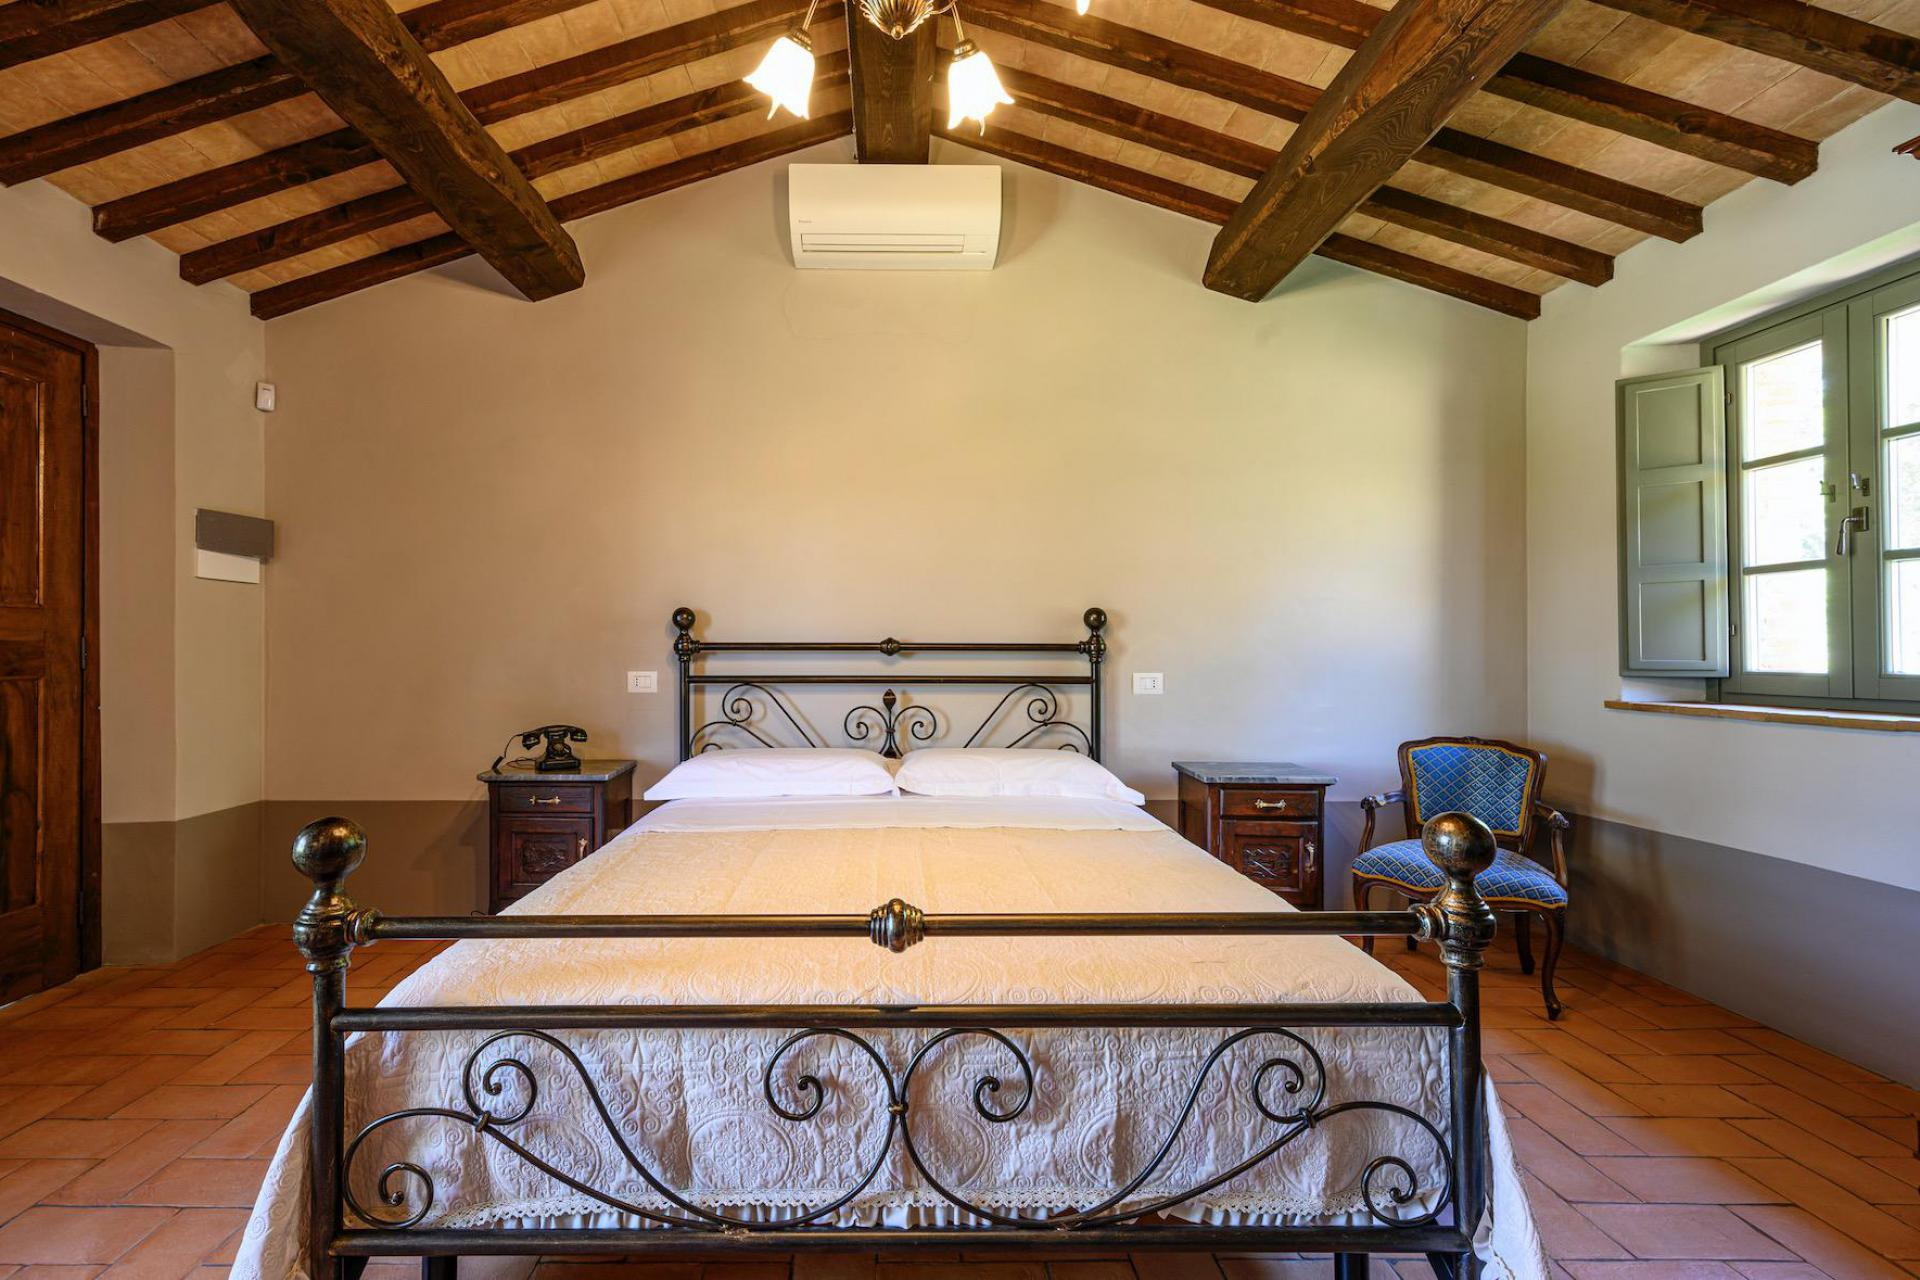 Agriturismo Tuscany Ideal agriturismo in Tuscany to relax